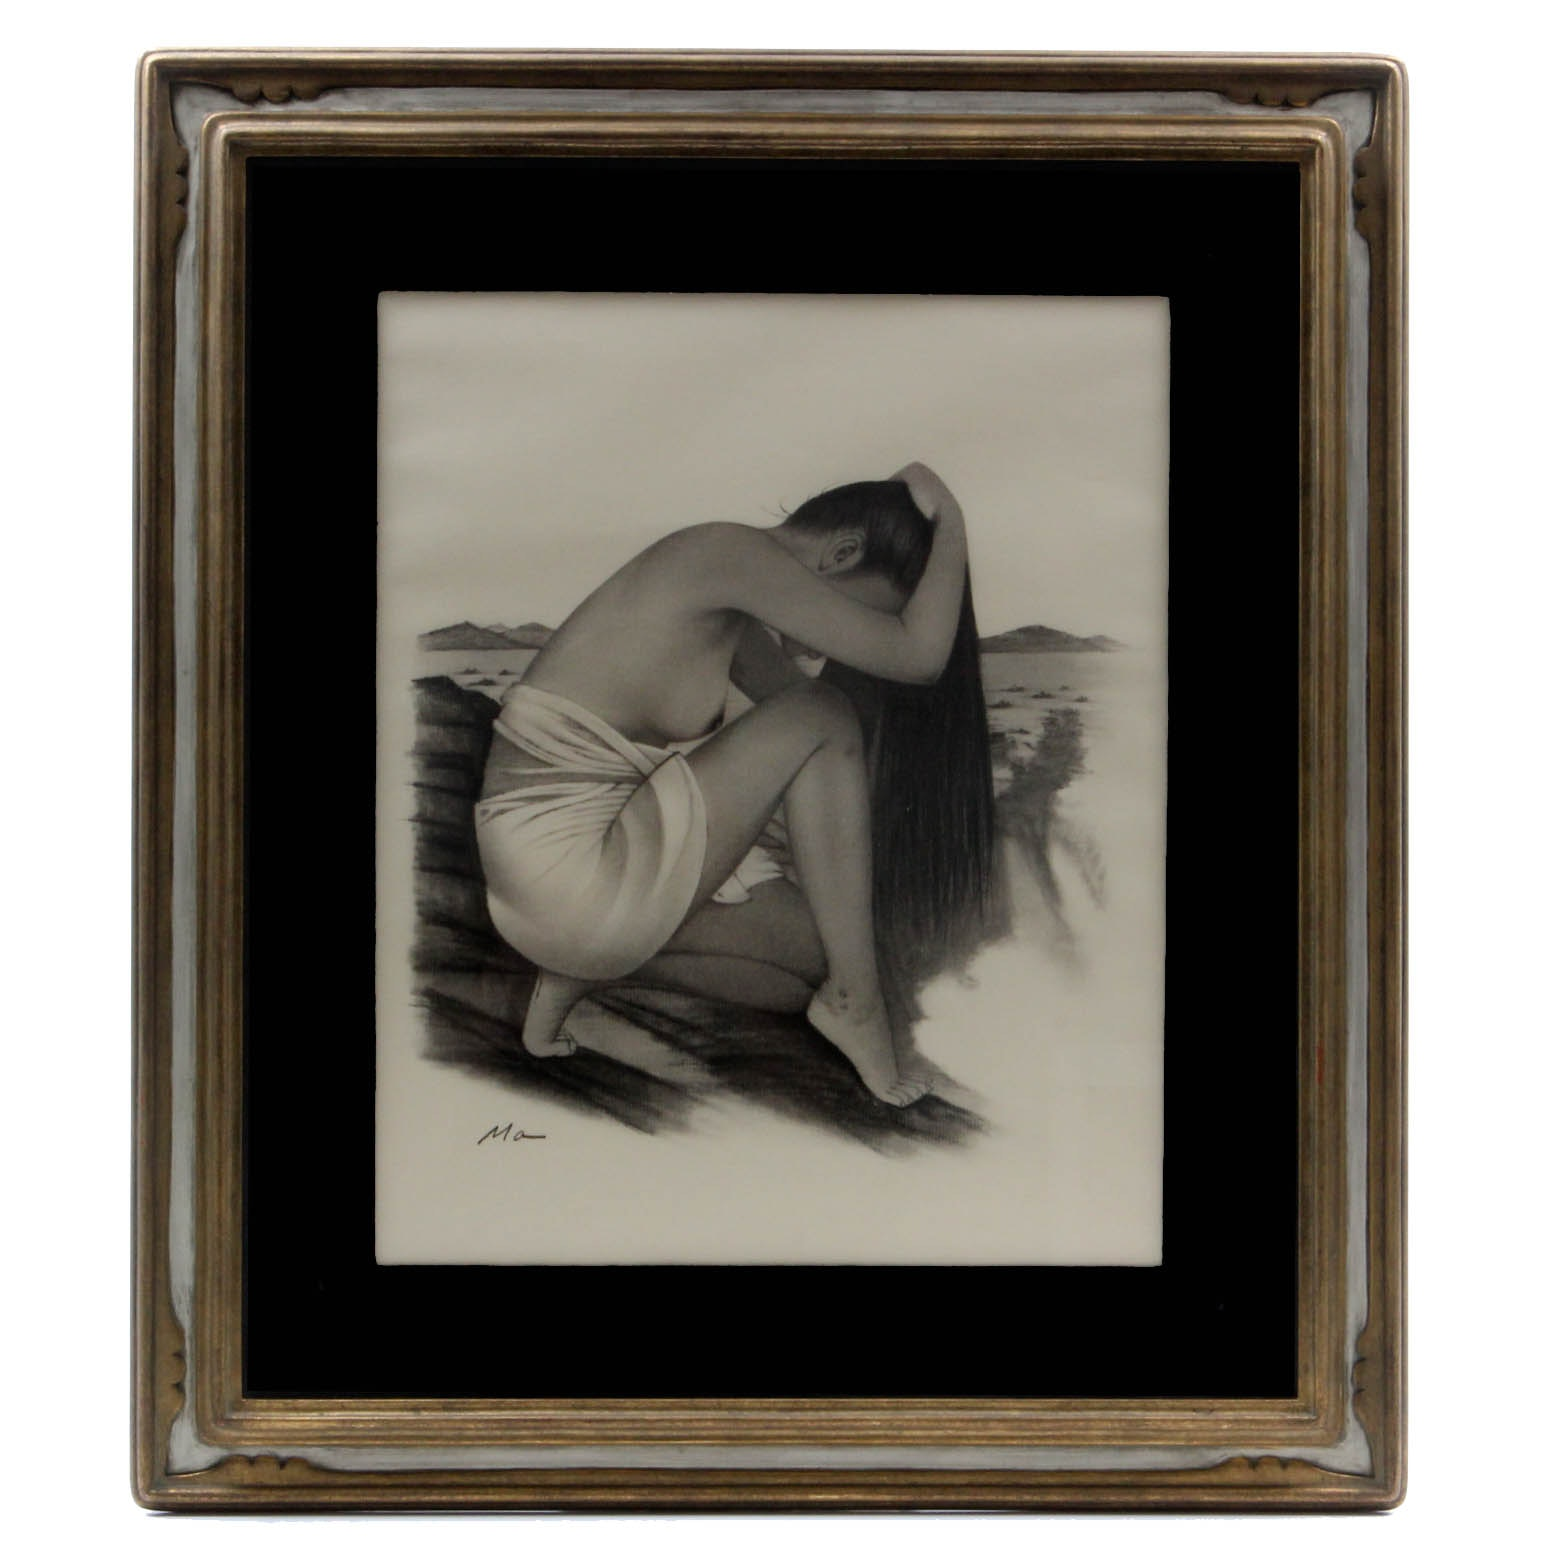 Ma Charcoal Drawing of a Woman Bathing